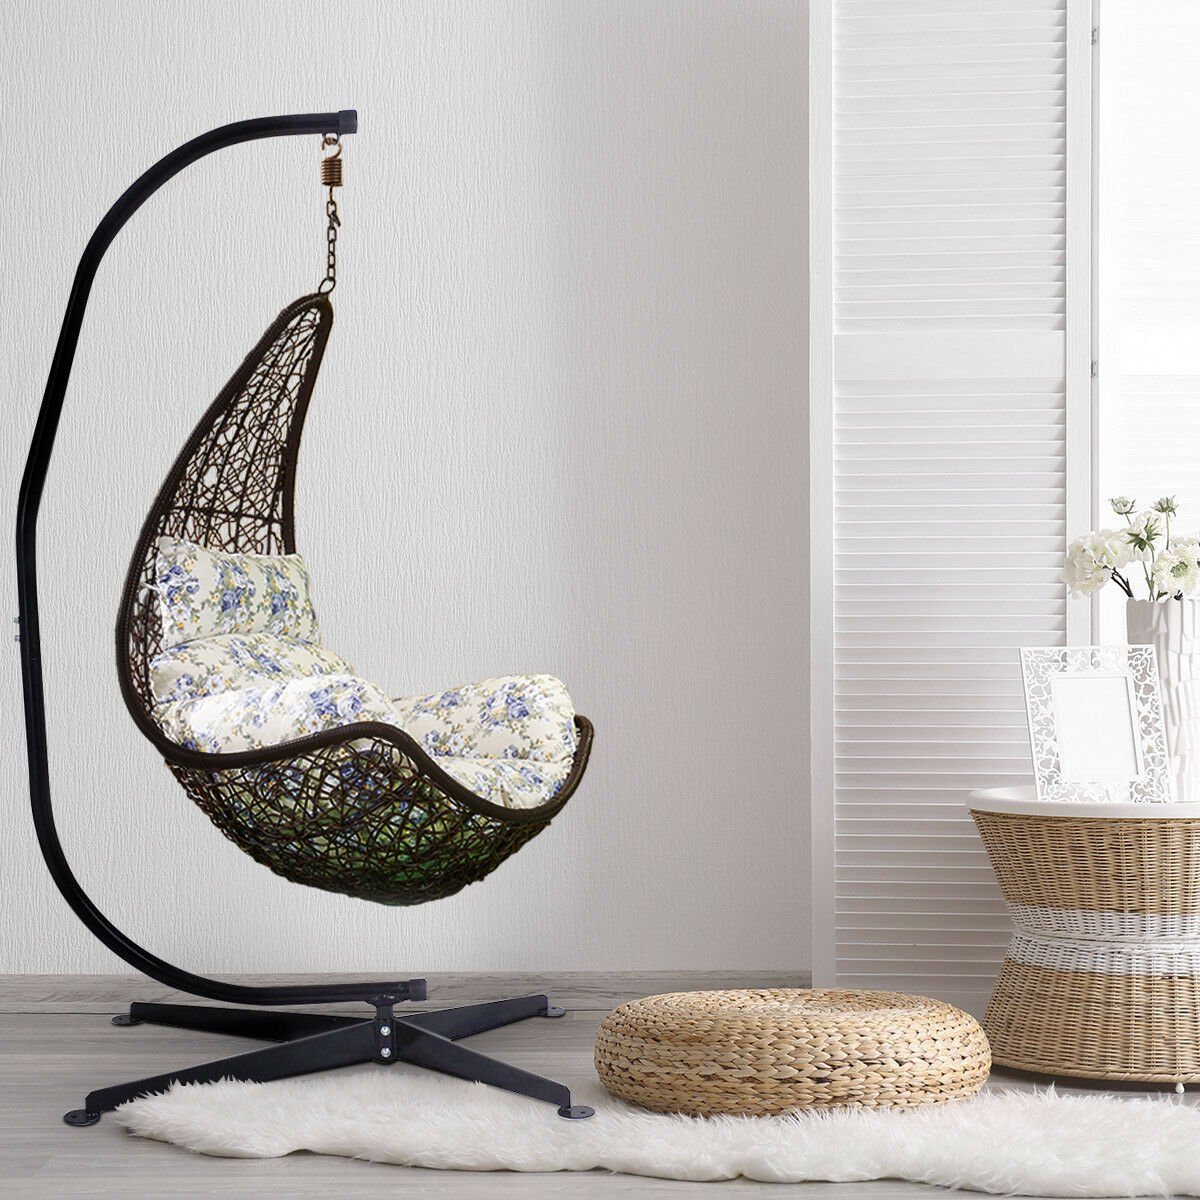 C Shaped Hammock Frame Stand Solid Steel Construction For Hanging Swing Chair